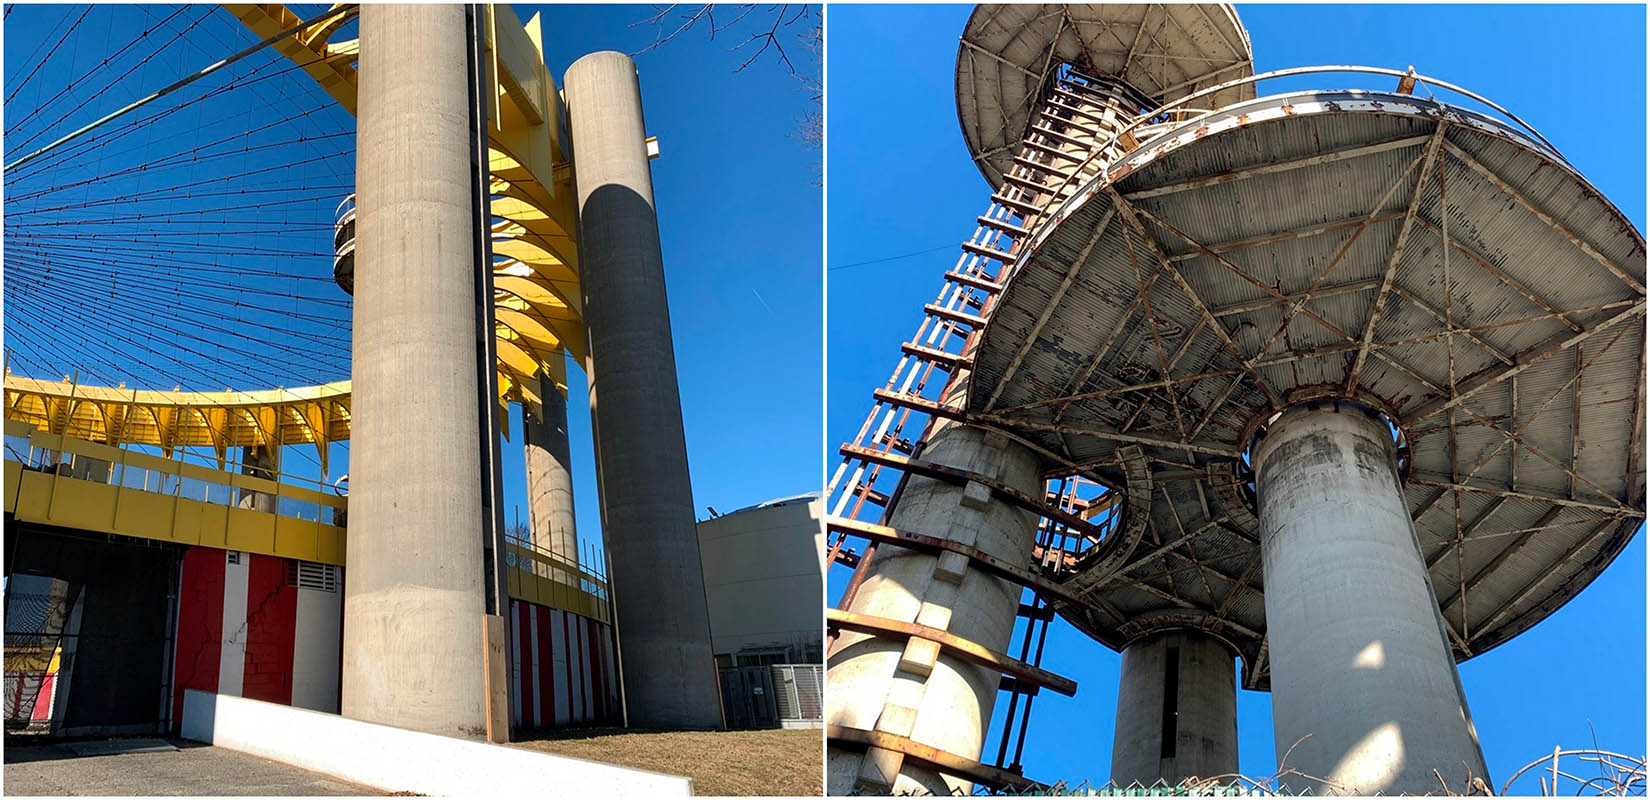 New York State Pavilion restoration update